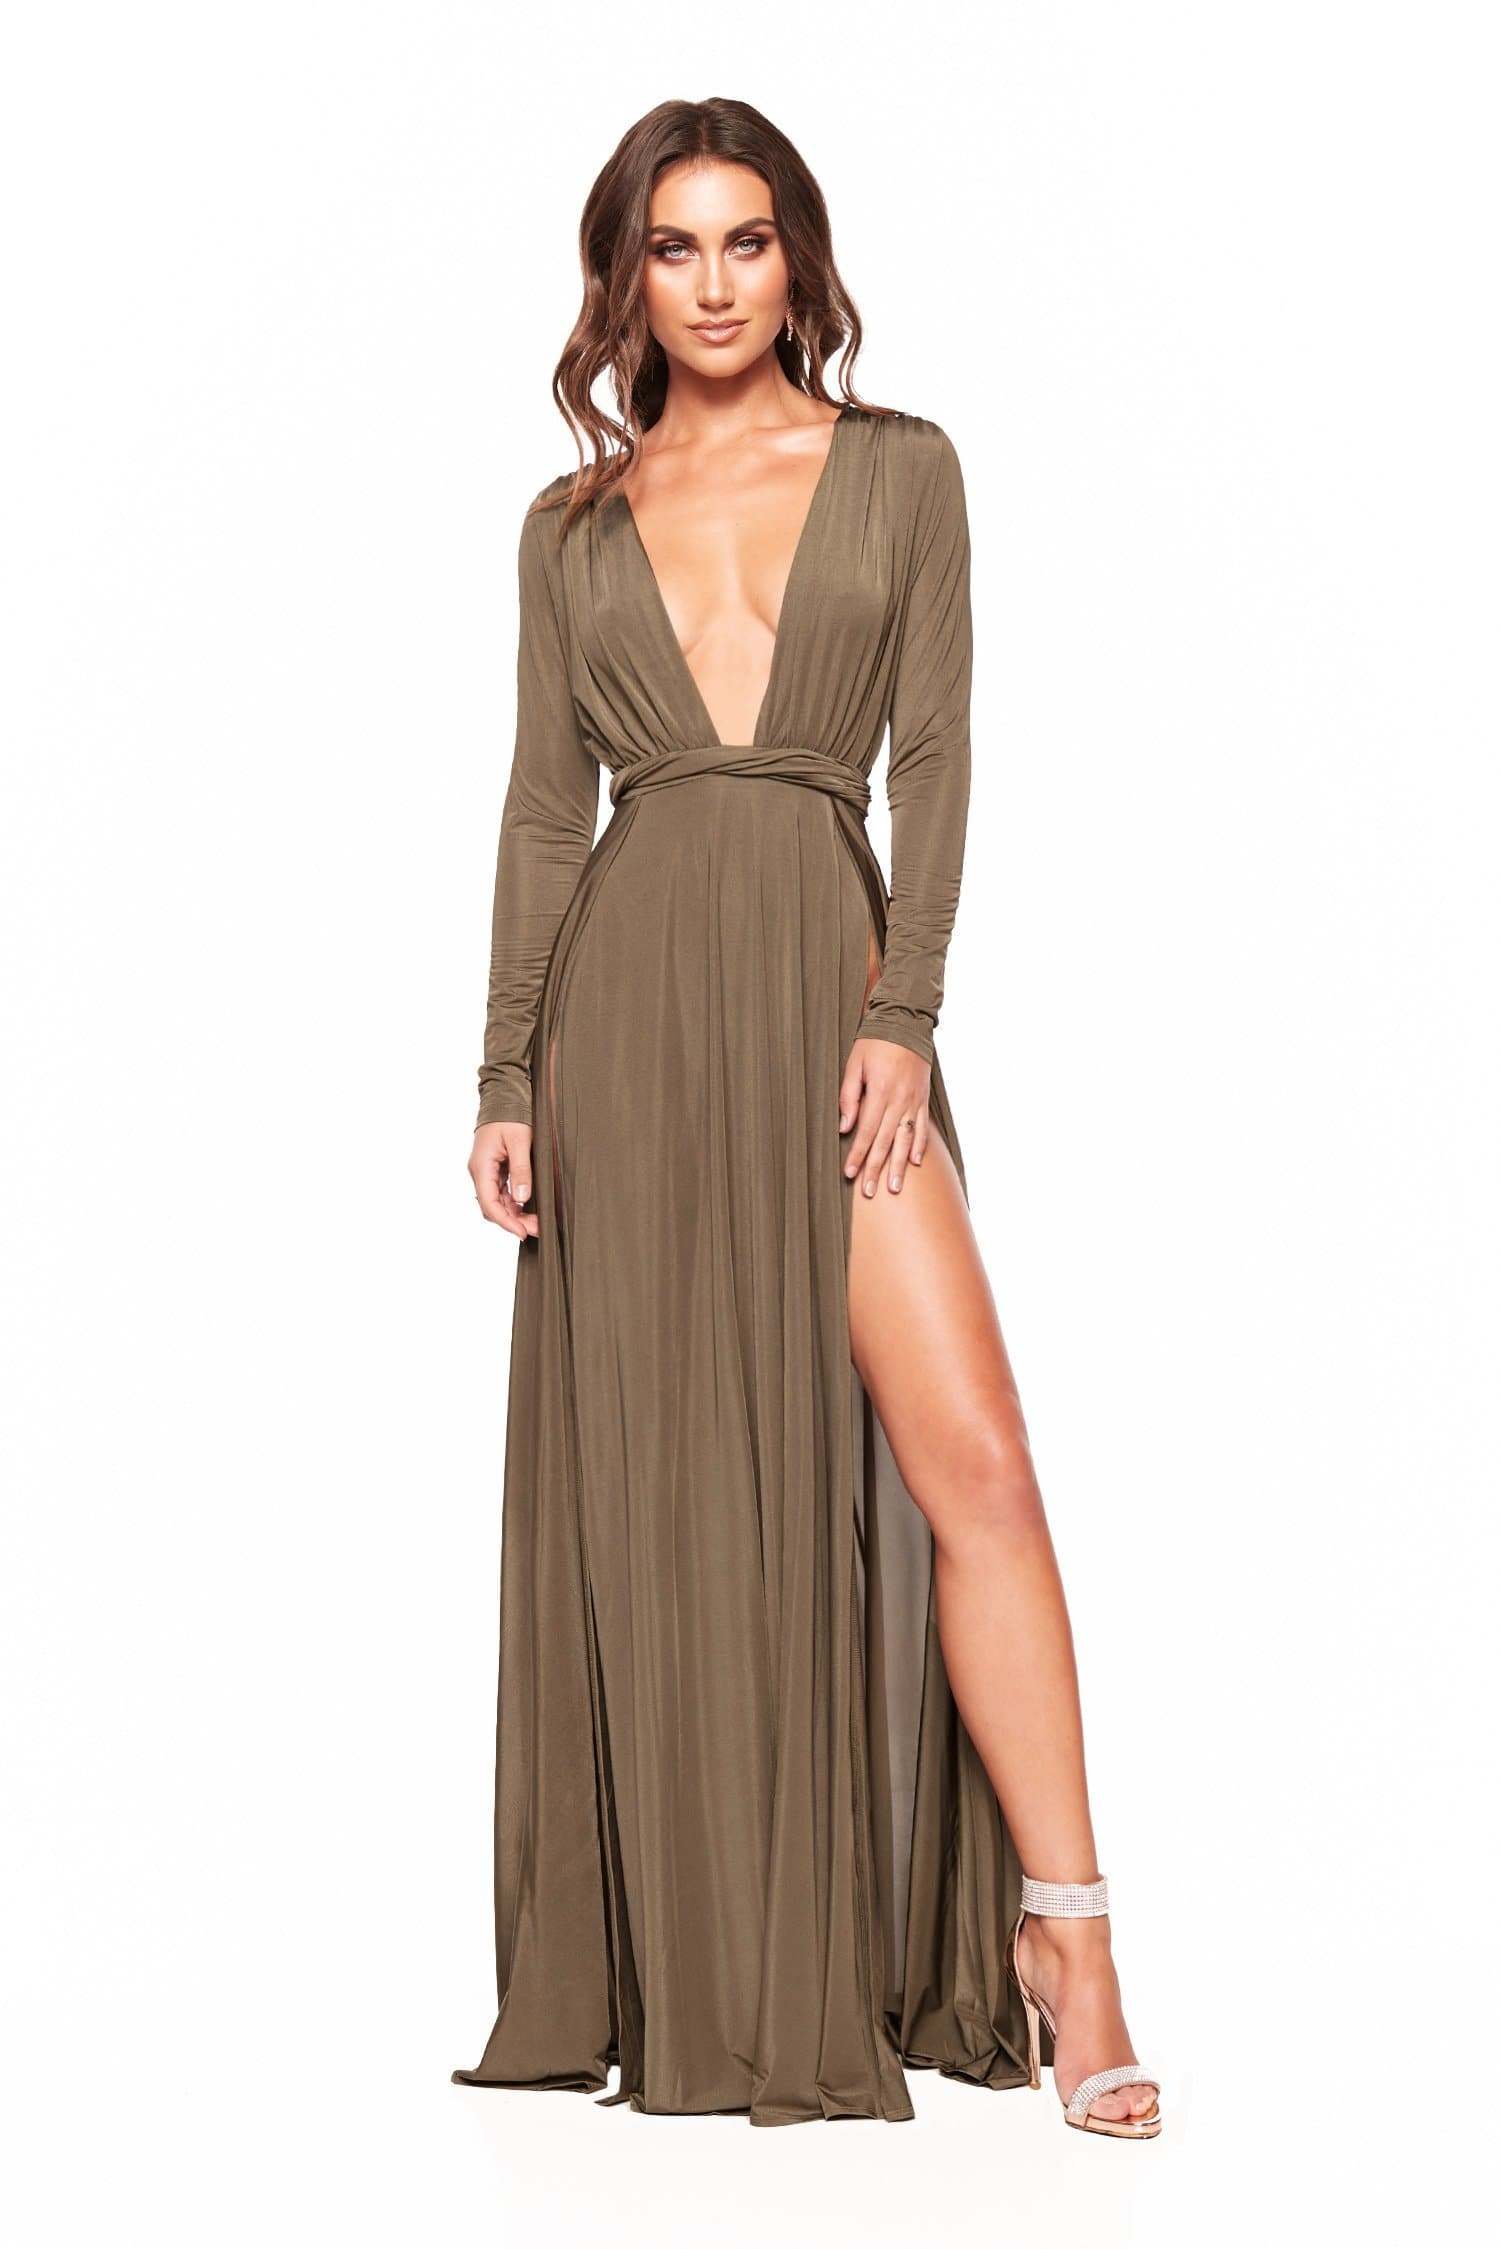 0c91d2ab9274 Sahara - Olive Long Sleeved Gown with Thigh-High Slits & Plunge Neck ...